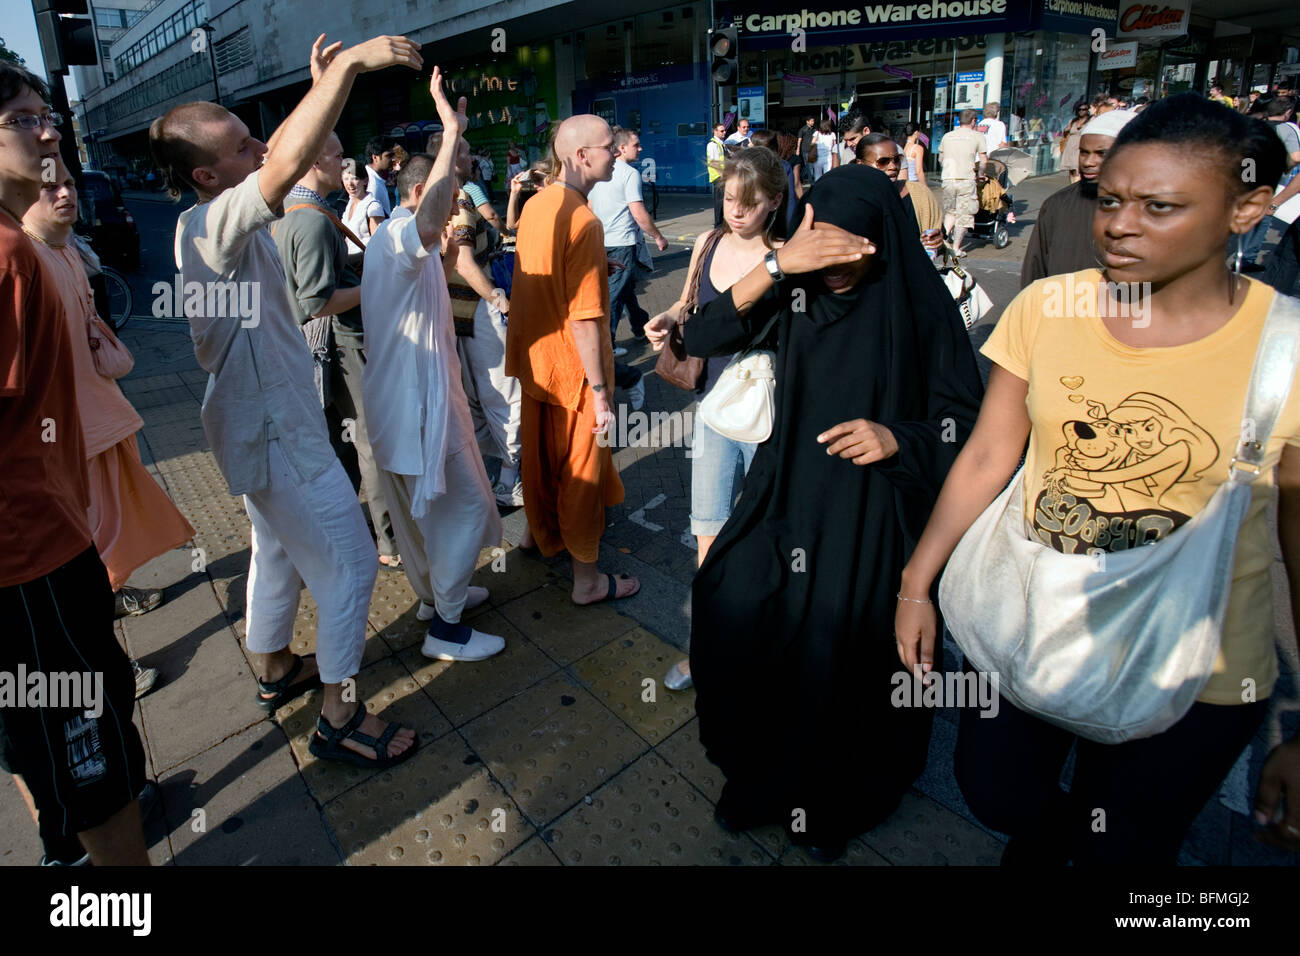 a group of hare krishna devotees walk past some muslims in oxford street london - Stock Image